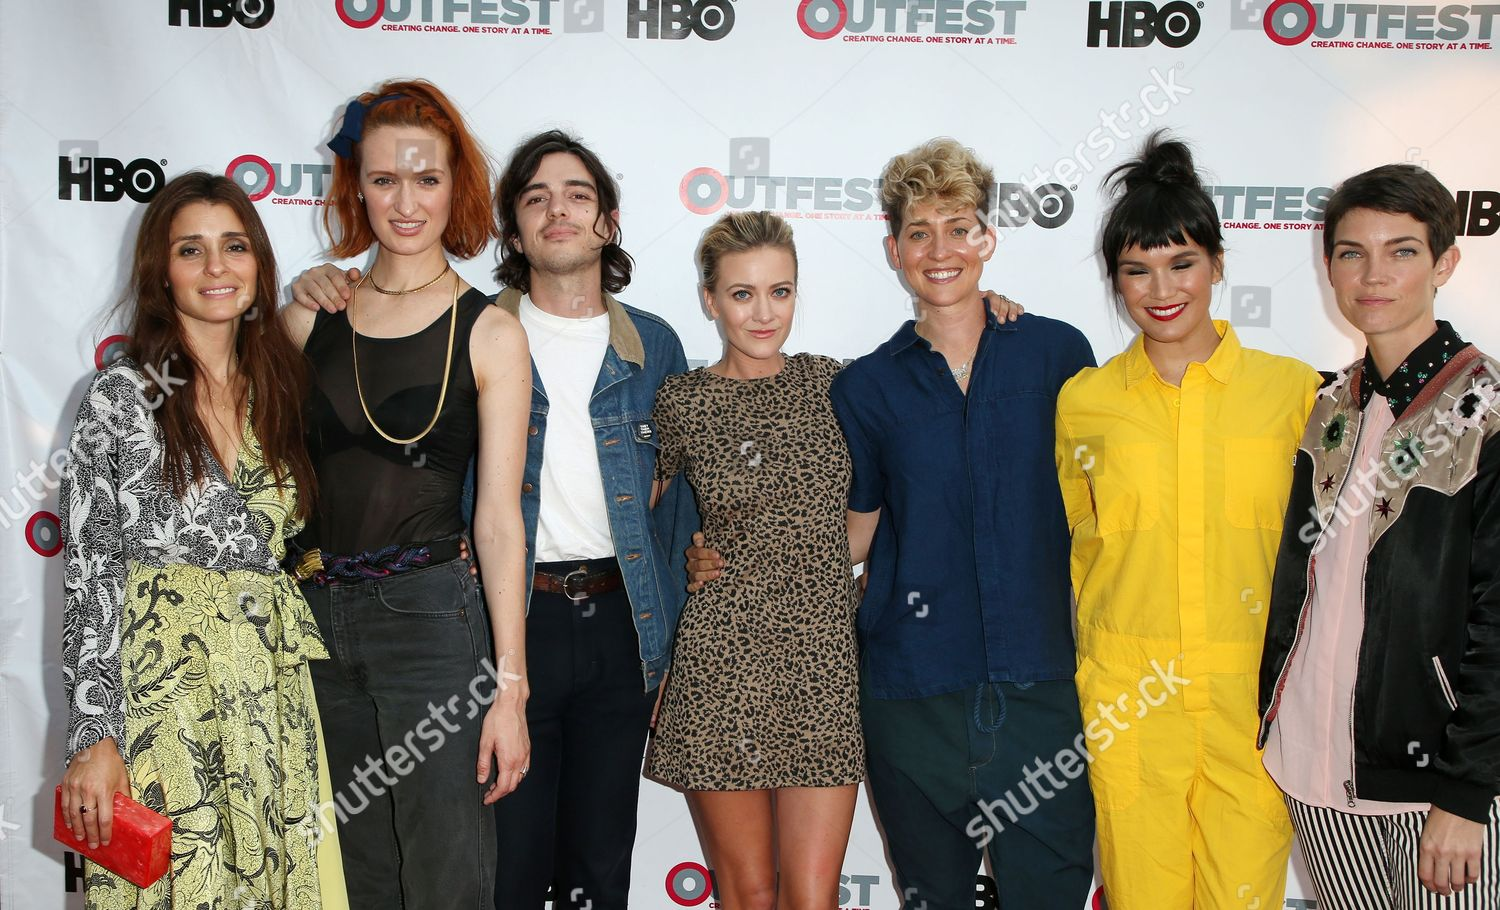 Discussion on this topic: Olga buzova sexy 68 pics gifs video, shiri-appleby-strangers-screening-outfest-los-angeles/